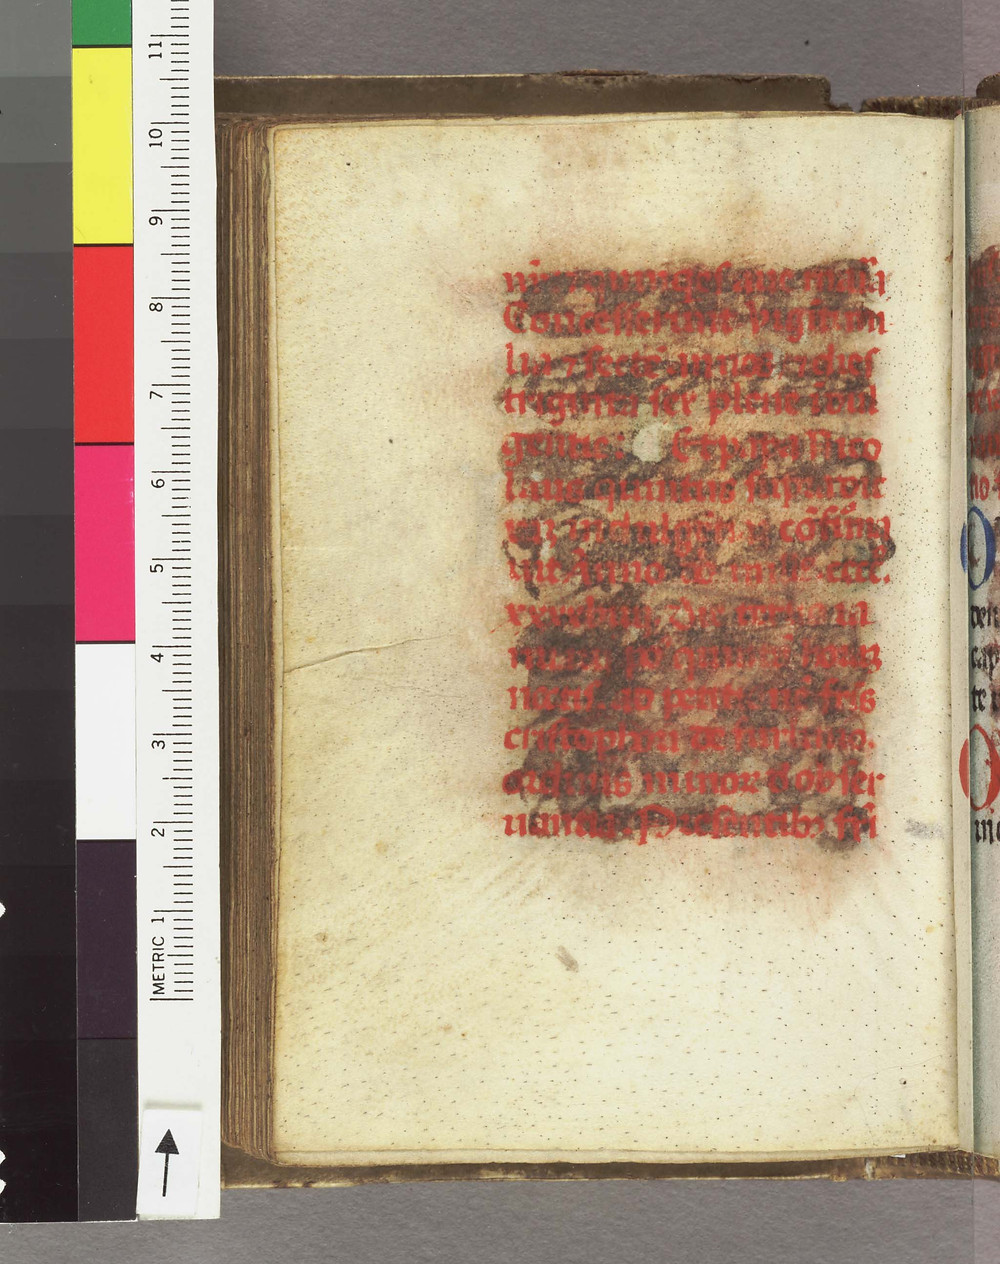 Text on vellum (hair side), obliterated with wash | Italy, 15th c. at Harry Ransom Humanities Research Center, University of Texas at Austin via Digital Scriptorium.